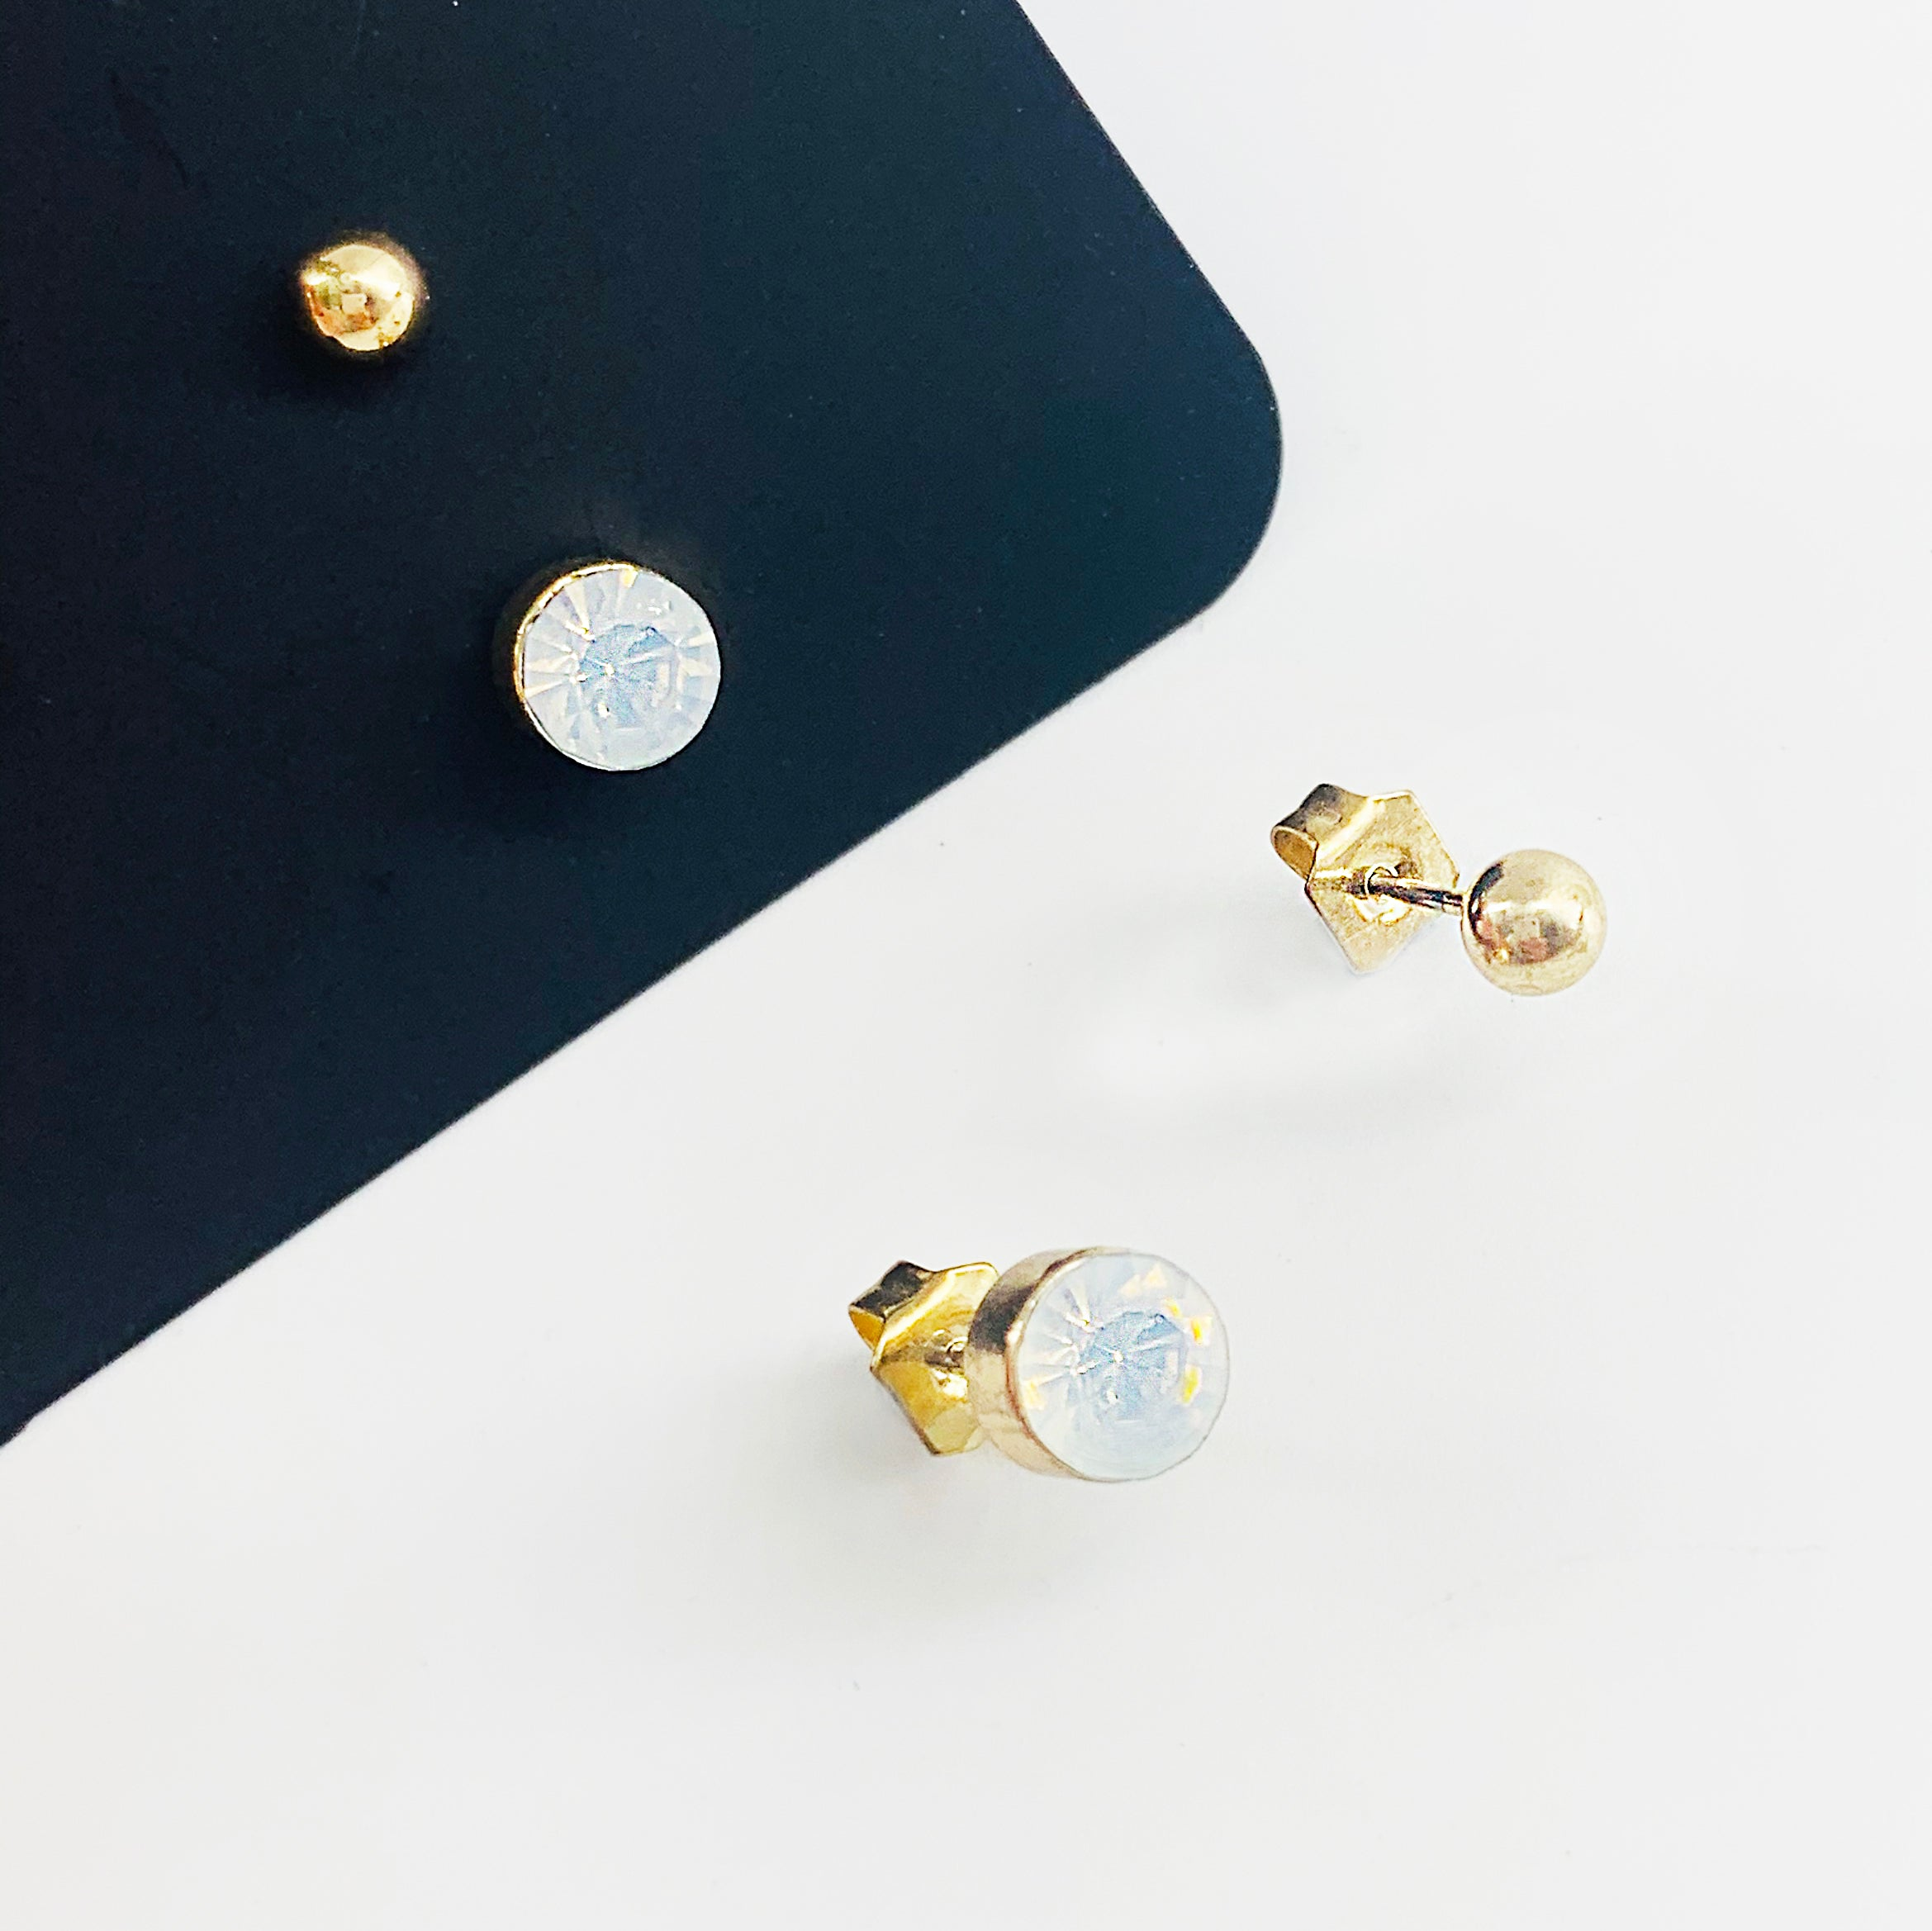 Small white diamante studs with gold ball studs